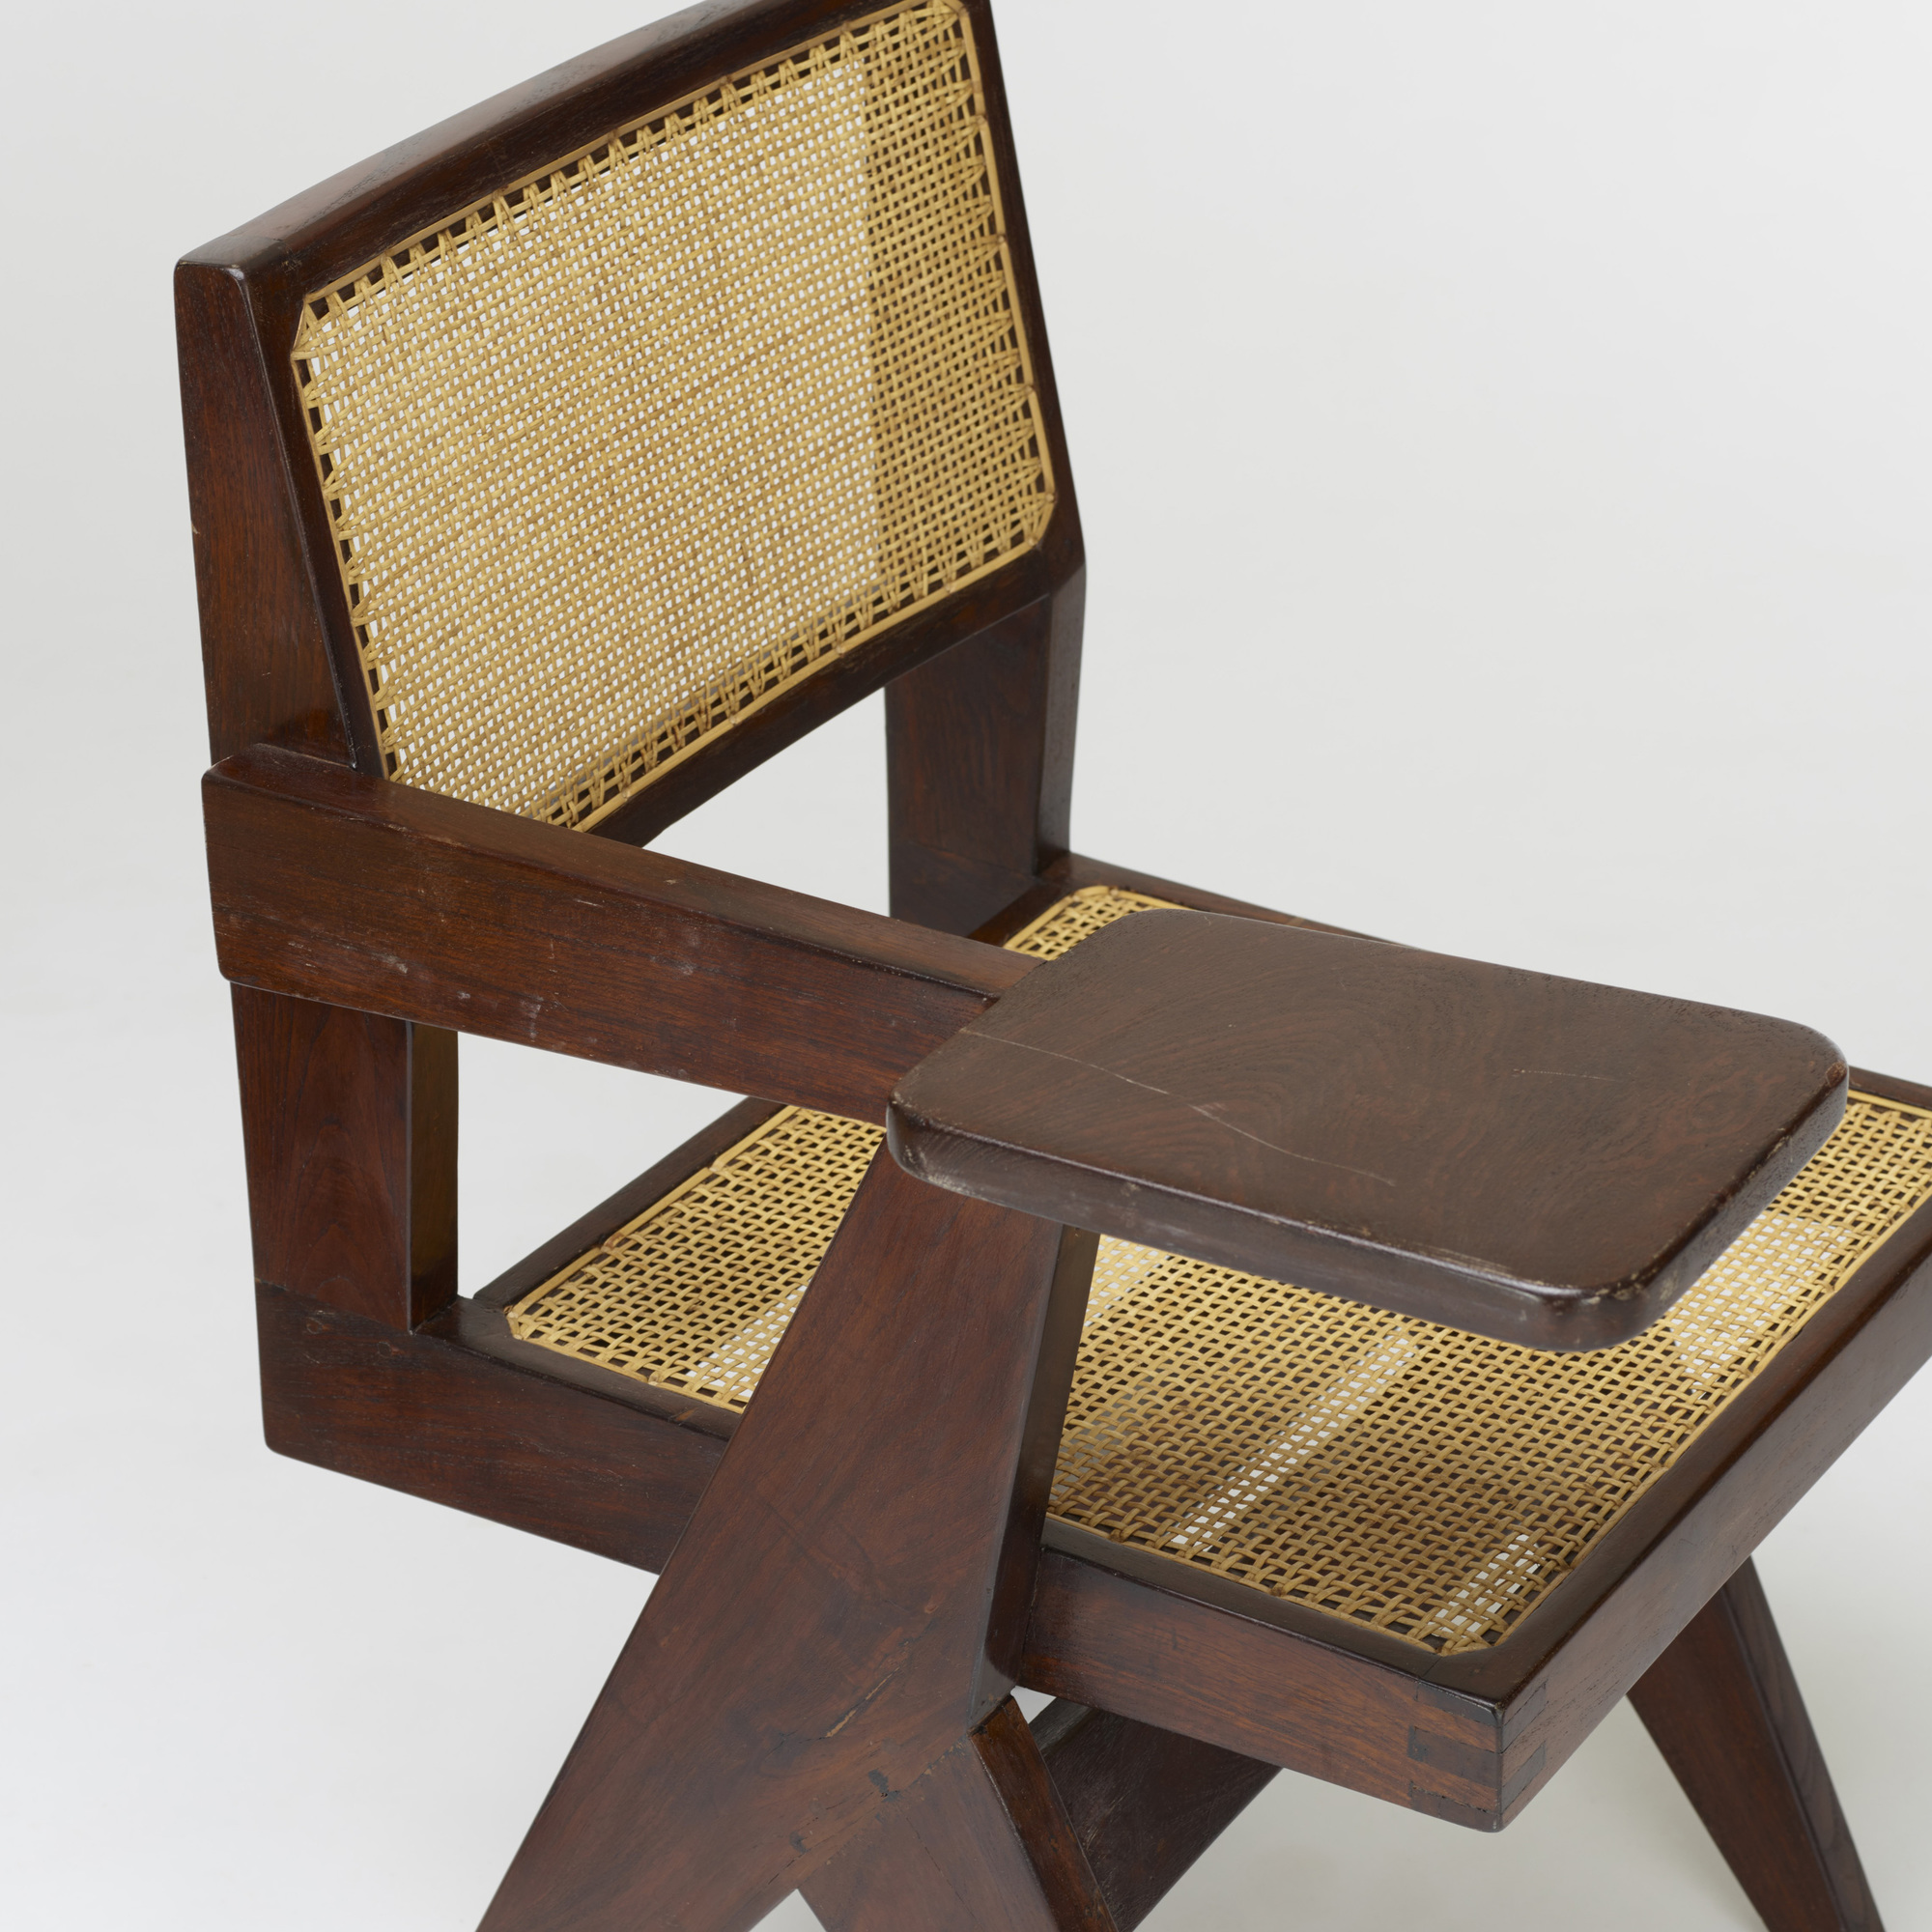 107: Pierre Jeanneret / pair of writing chairs from Chandigarh (3 of 3)